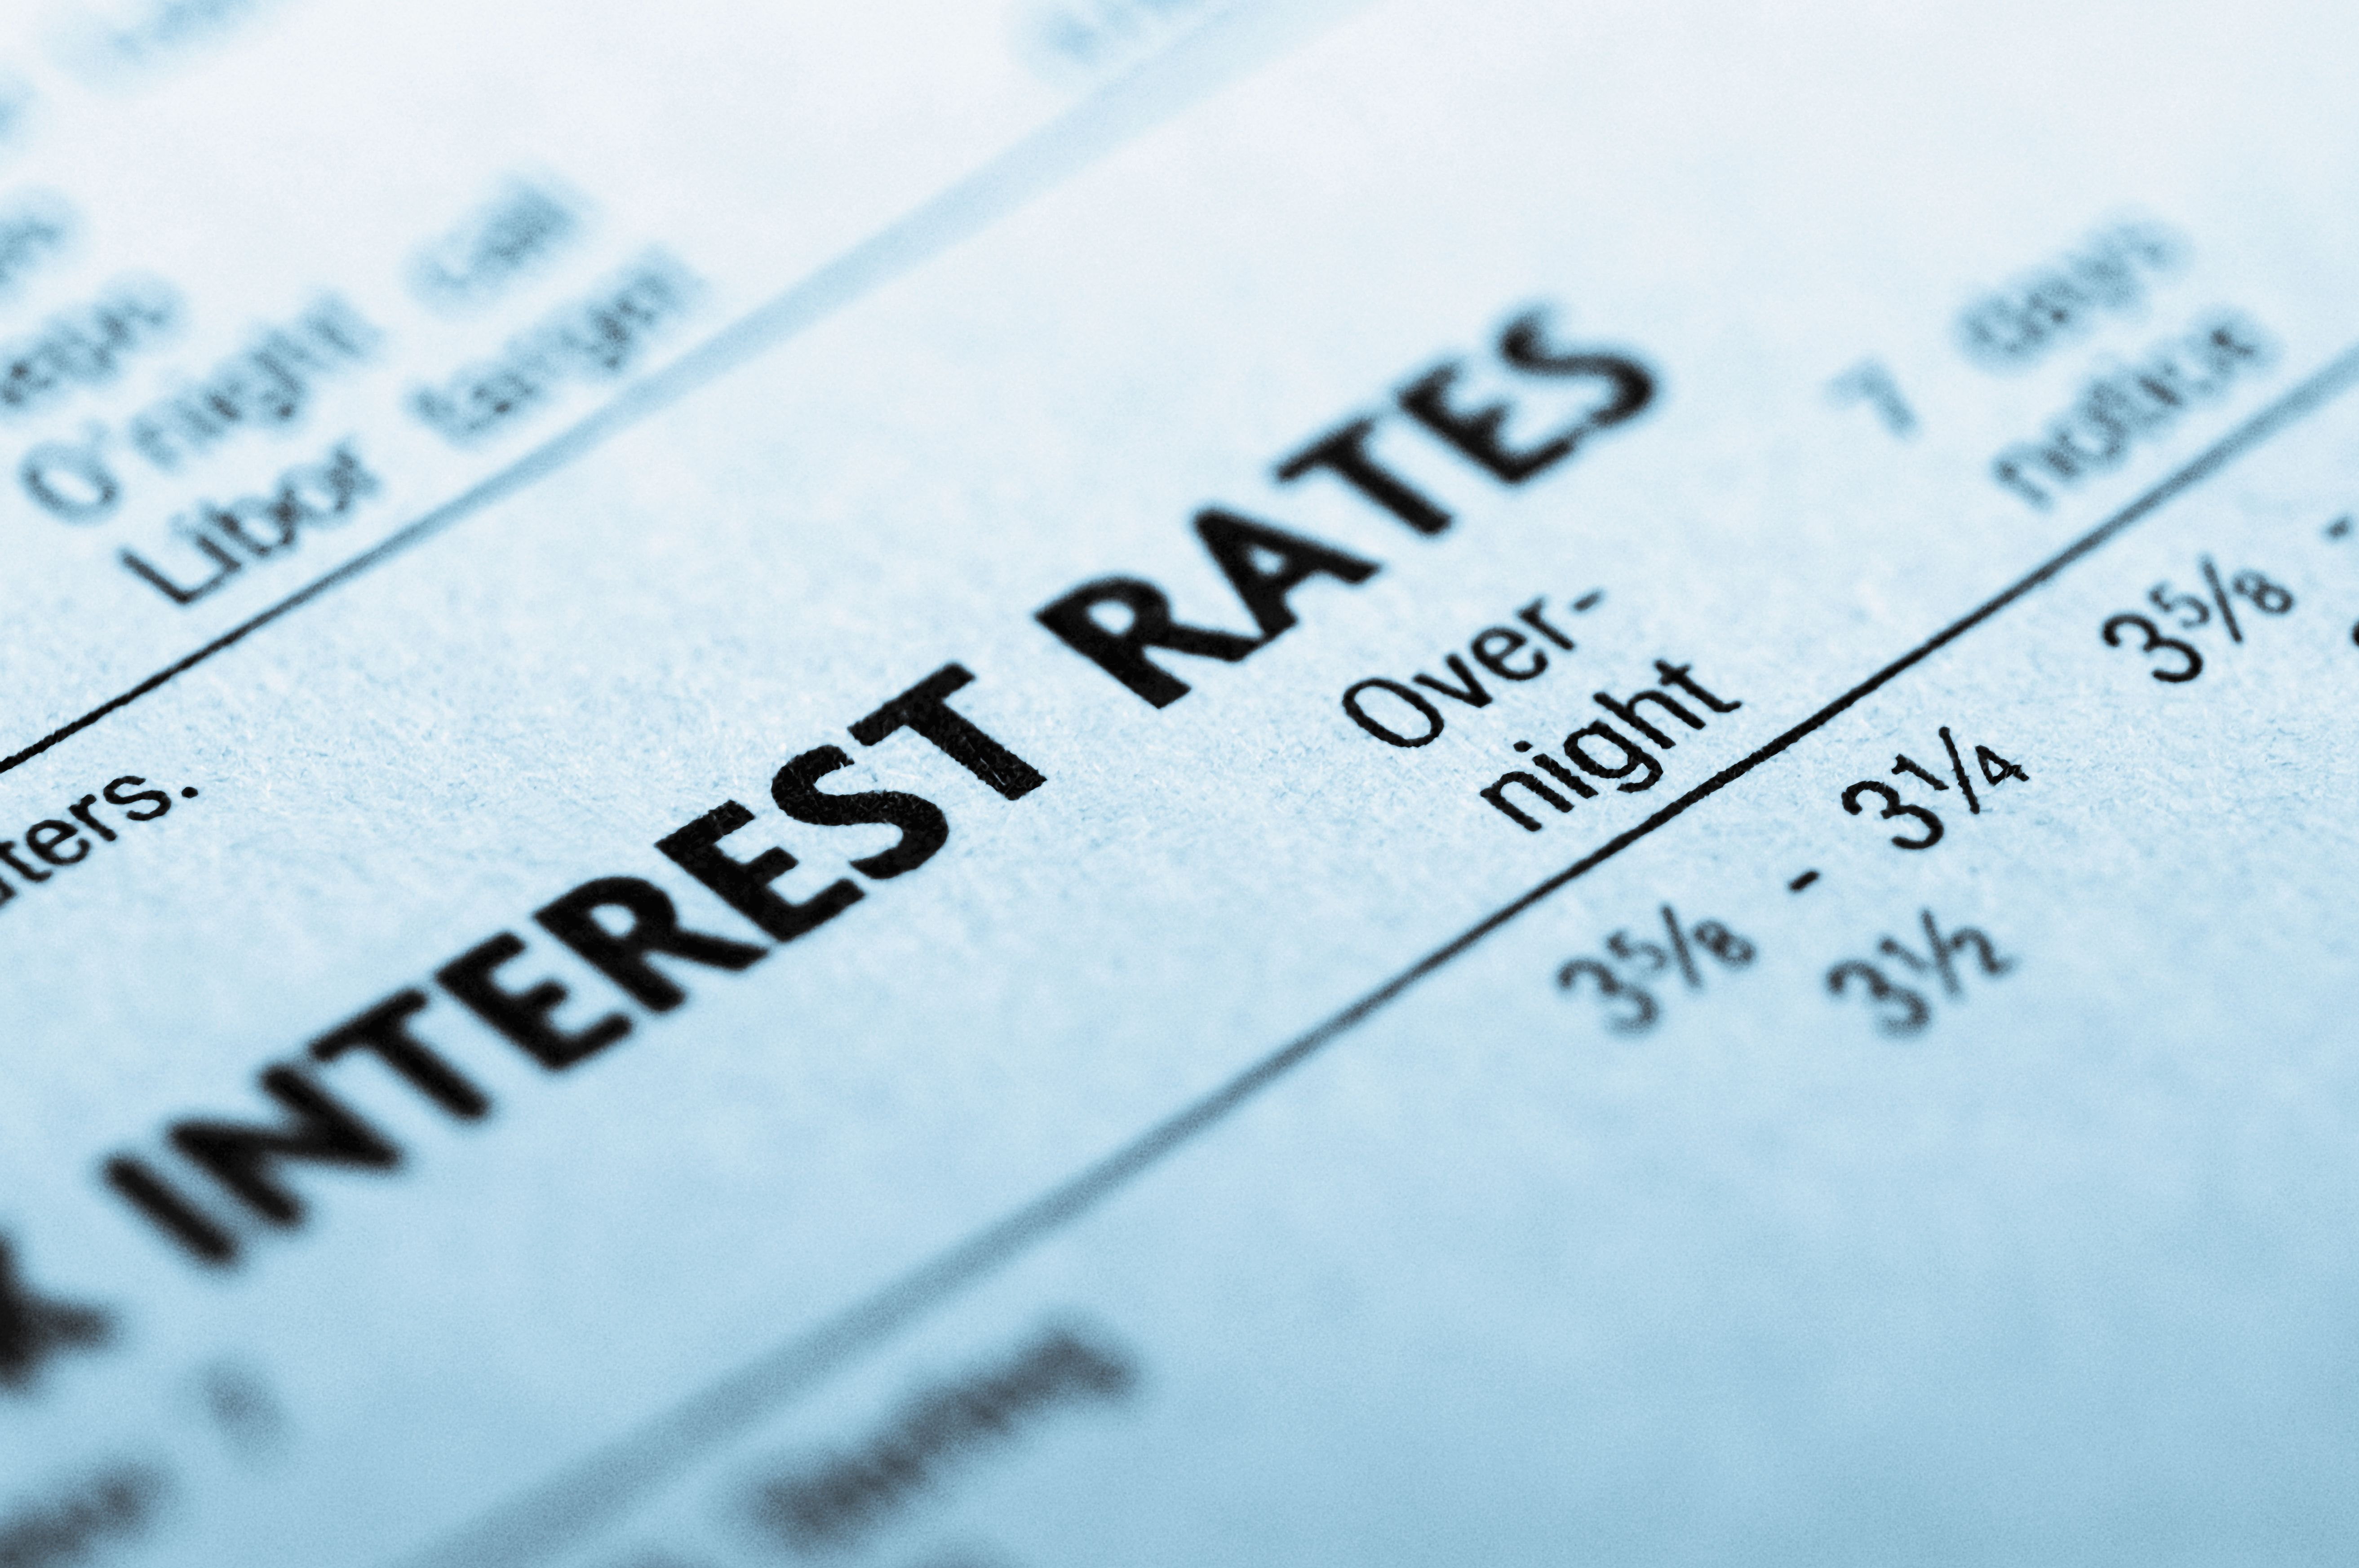 Close-up of paper showing the interest rate for a small business loan.